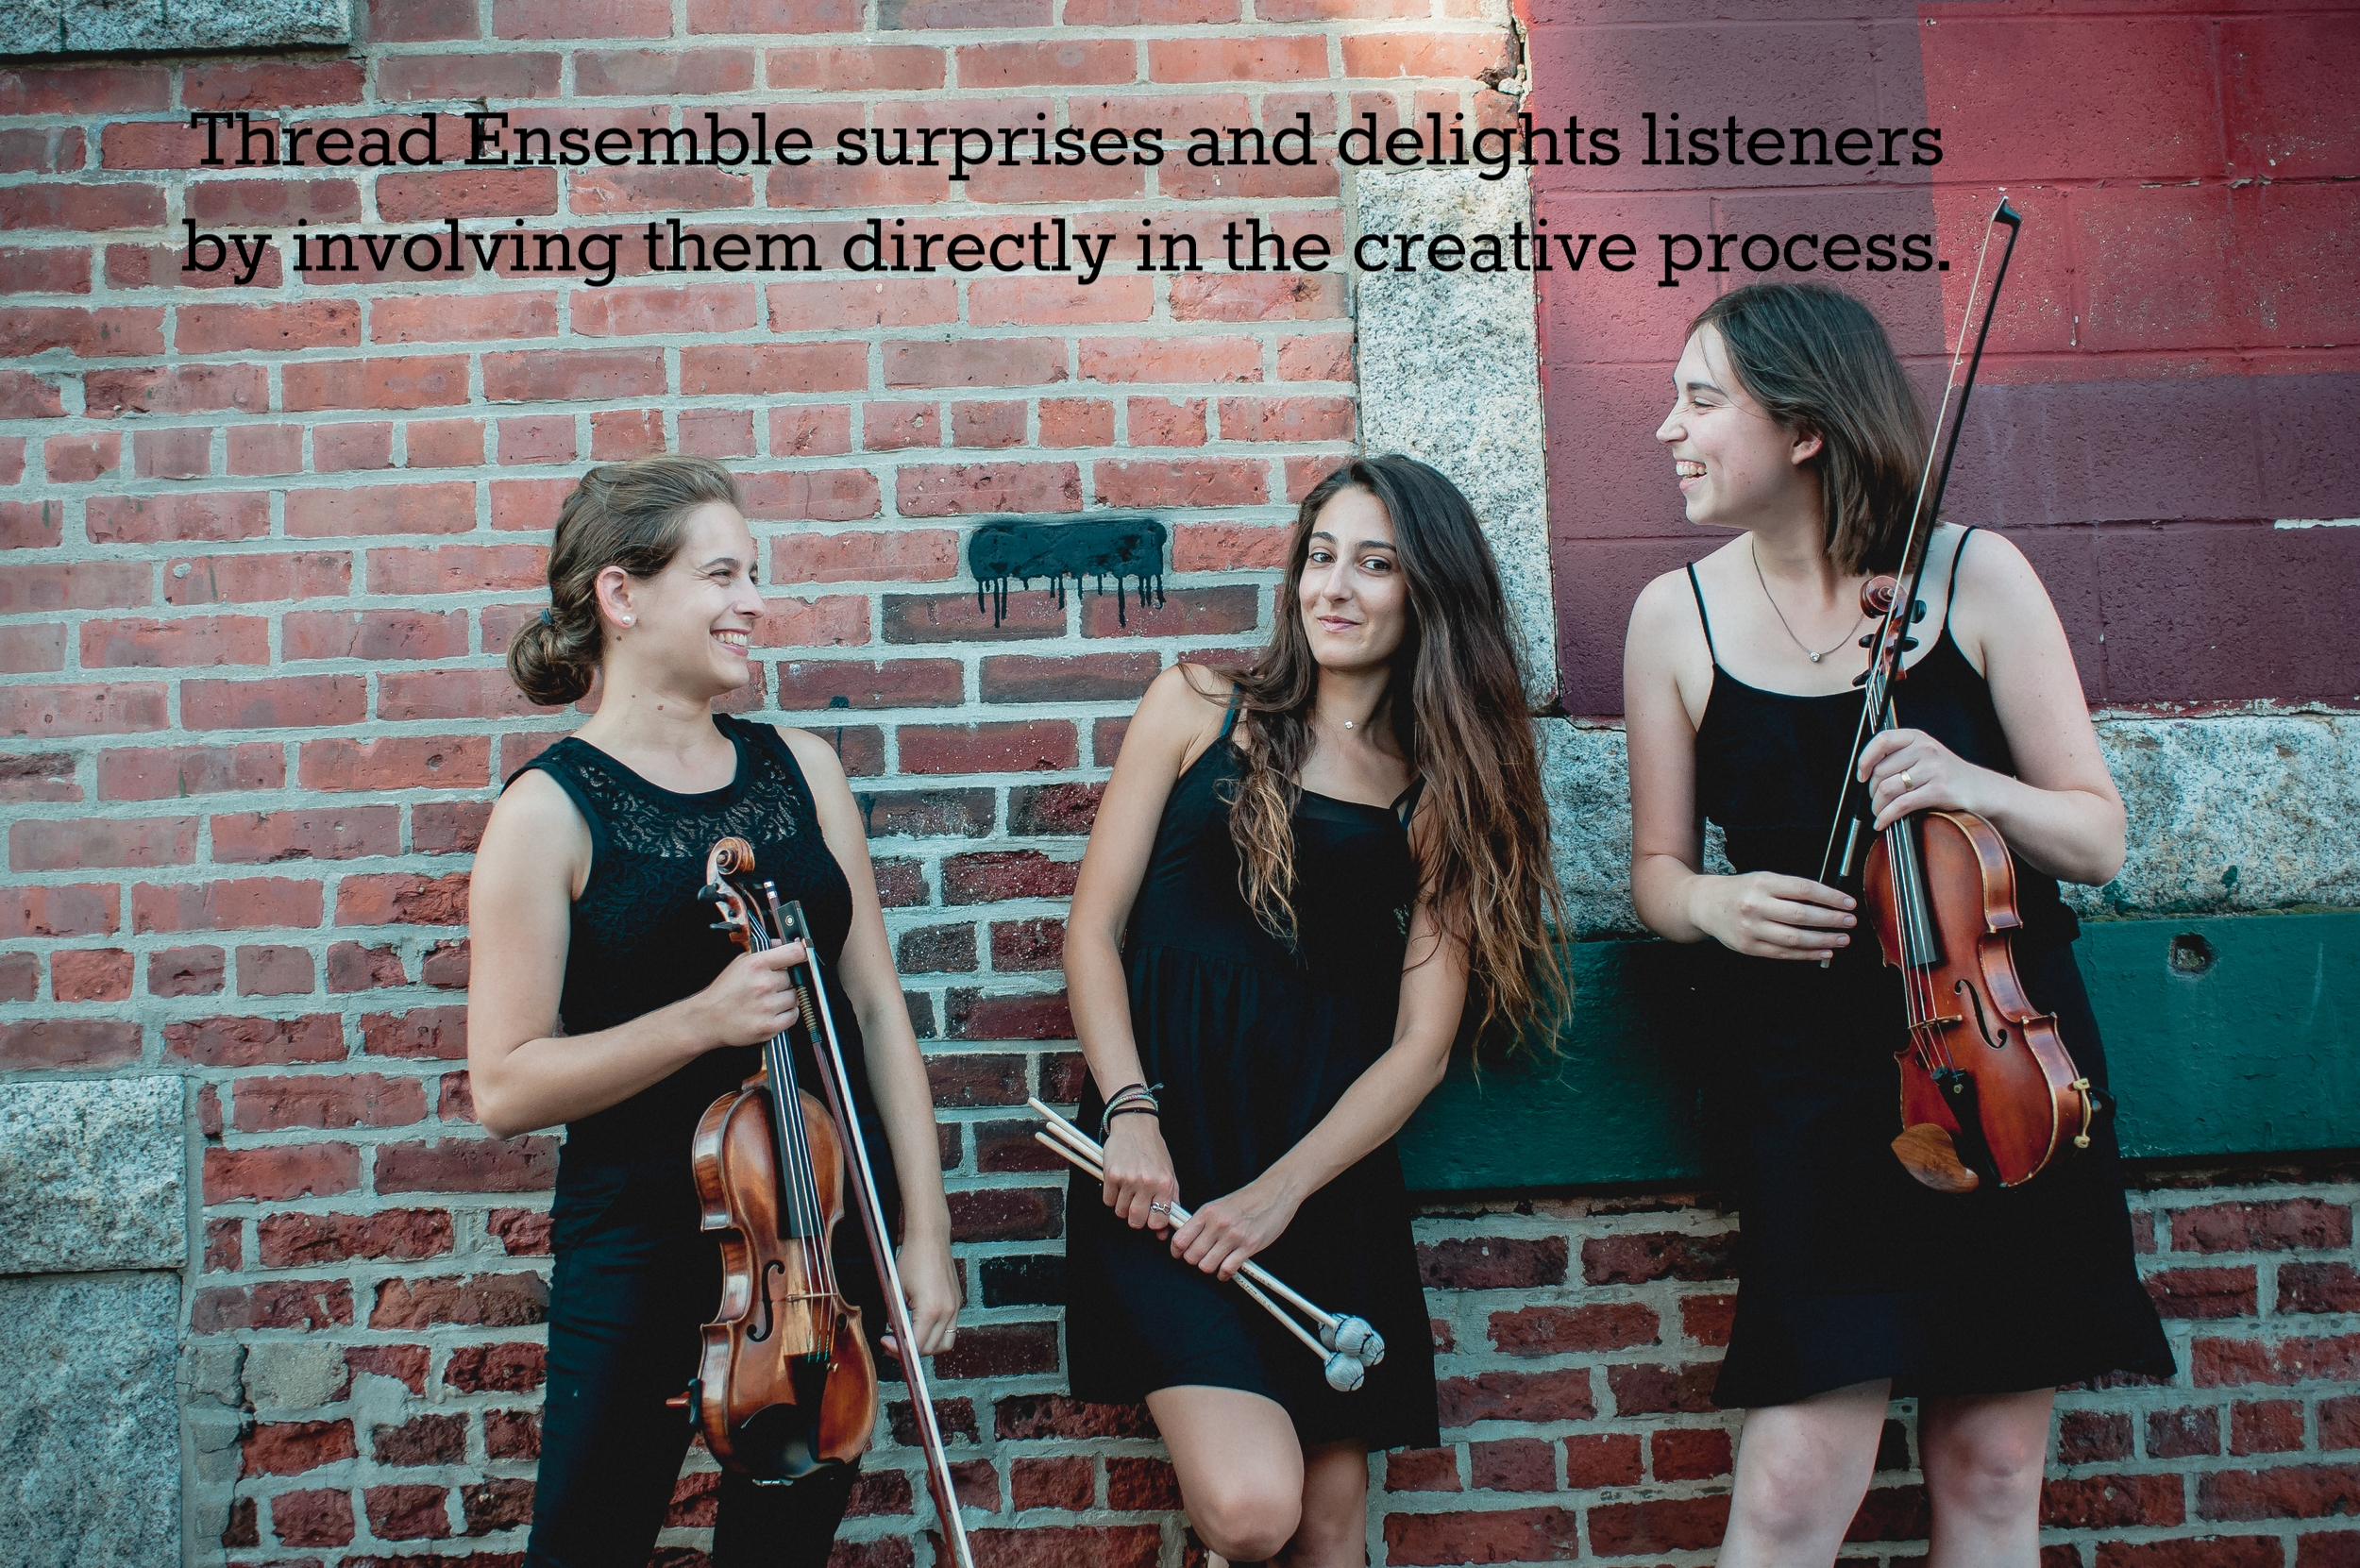 Thread Ensemble surprises and delights listeners by involving them directly in the creative process.